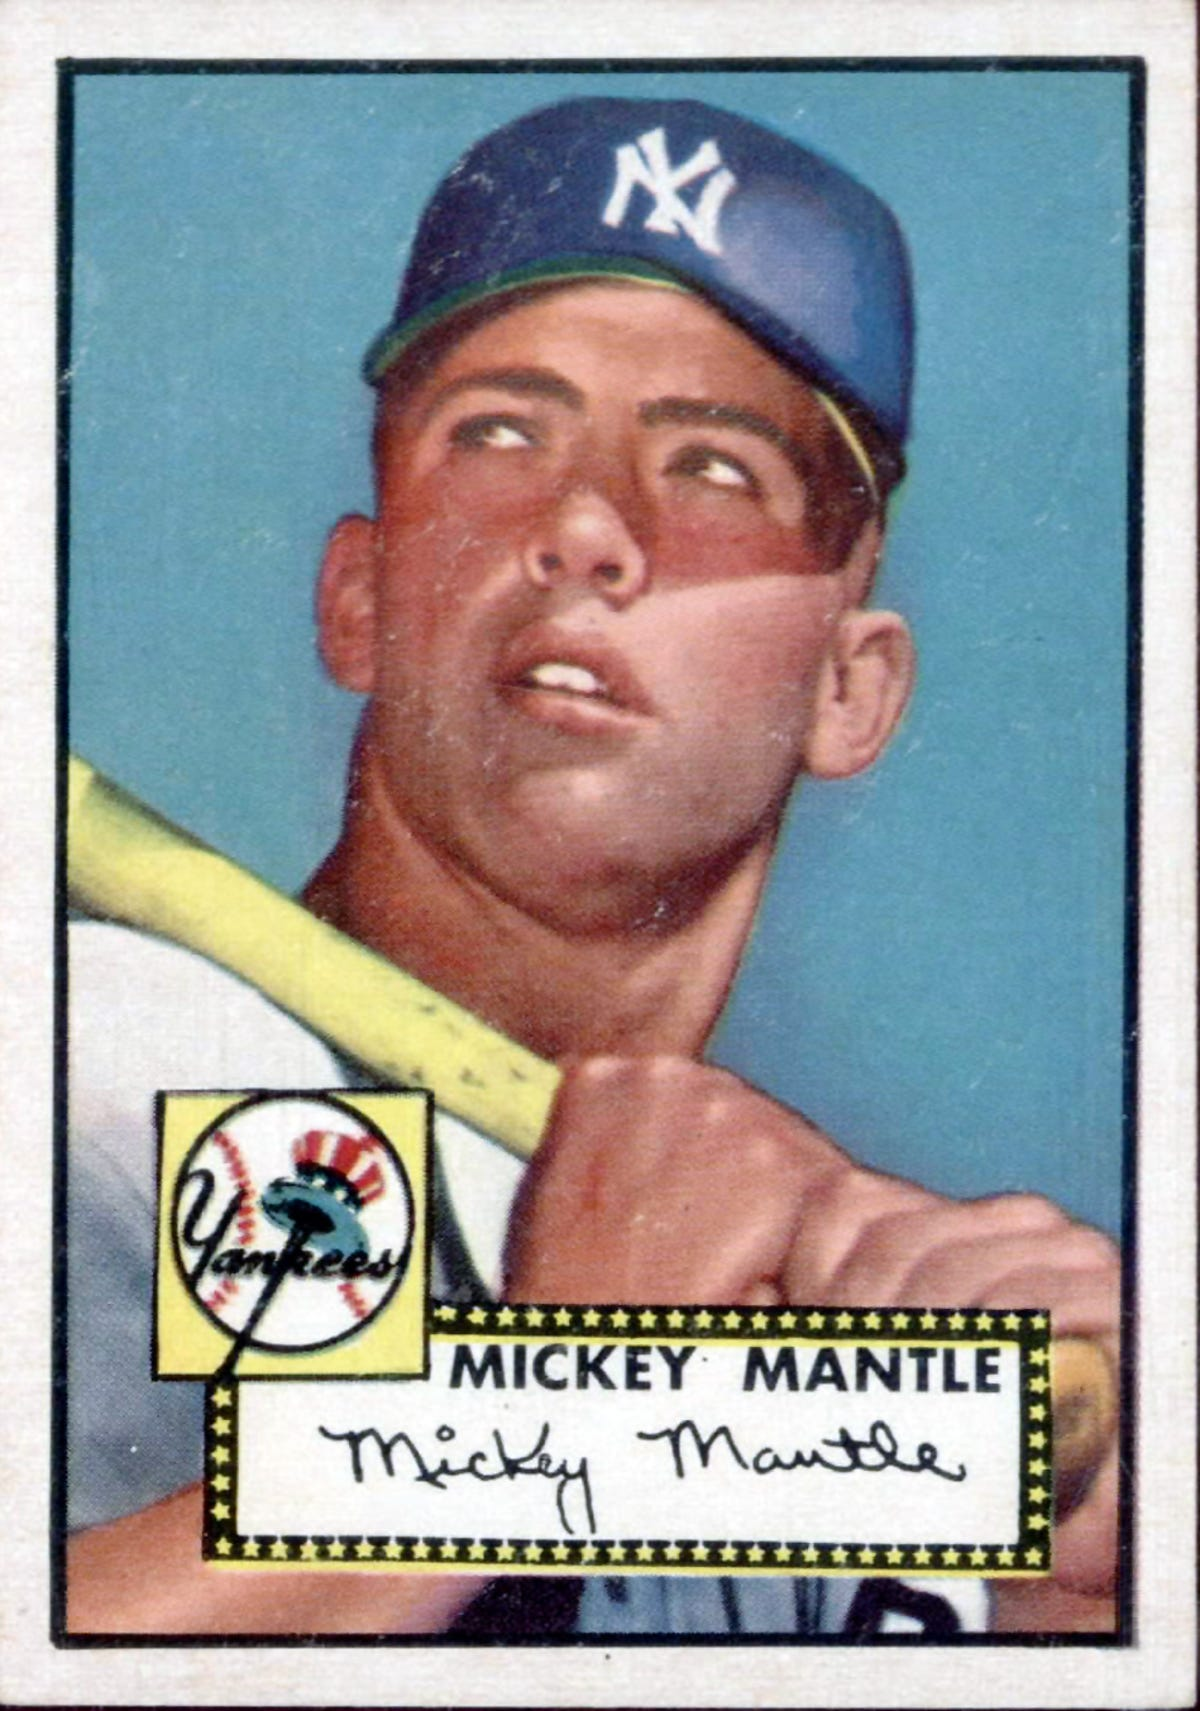 1952 Mickey Mantle Baseball Card Sells For Near Record 288 Million